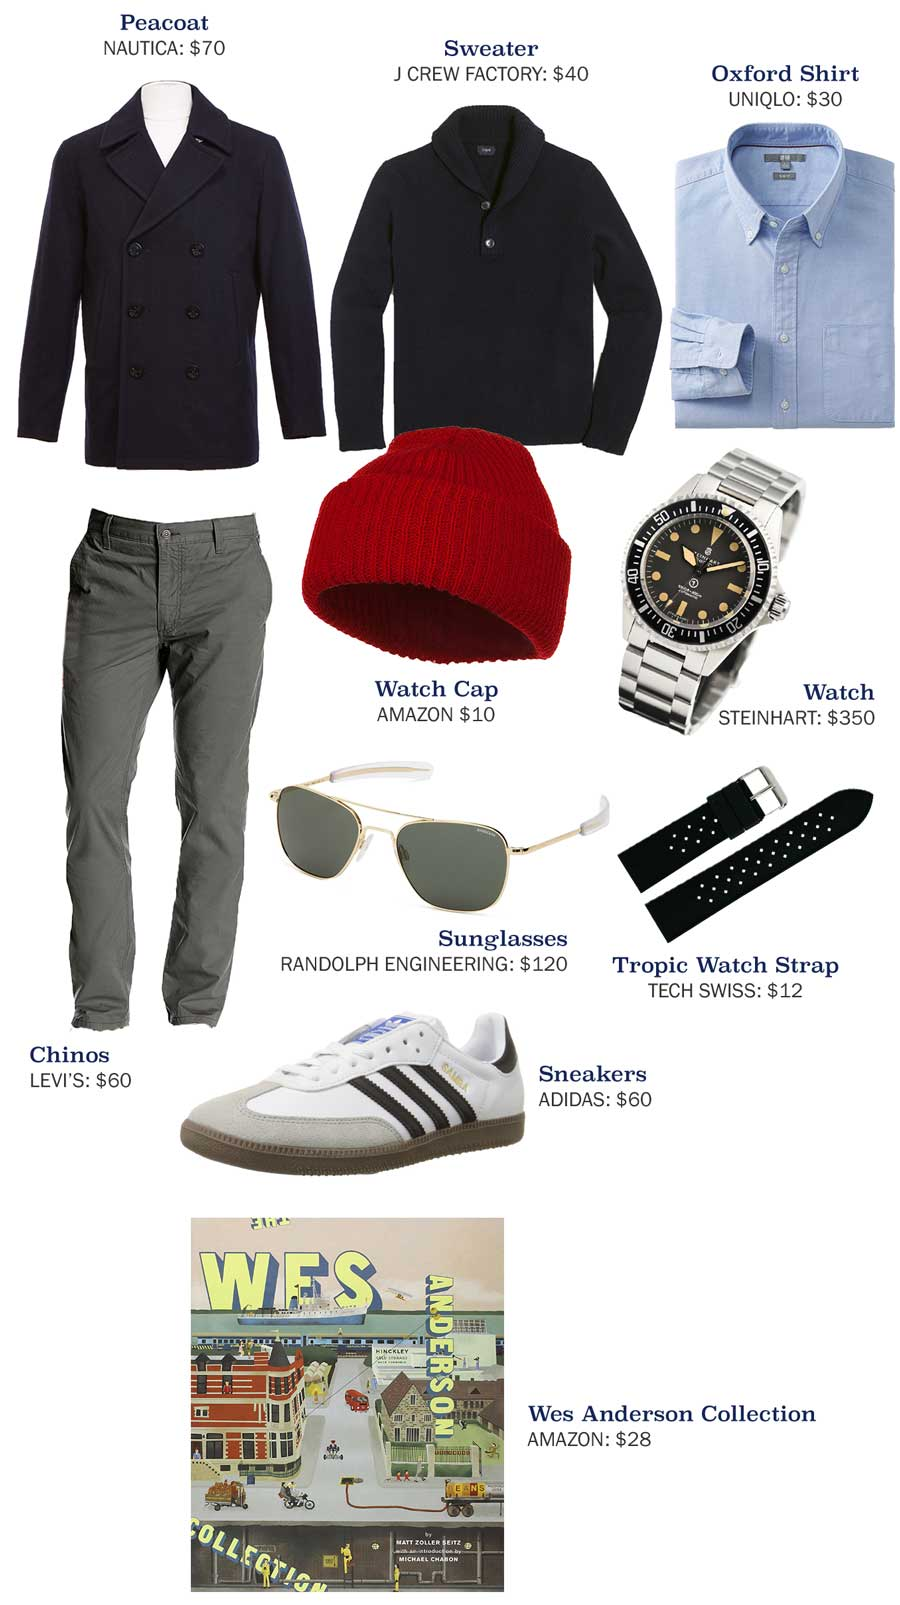 An outfit made with a red watch cap